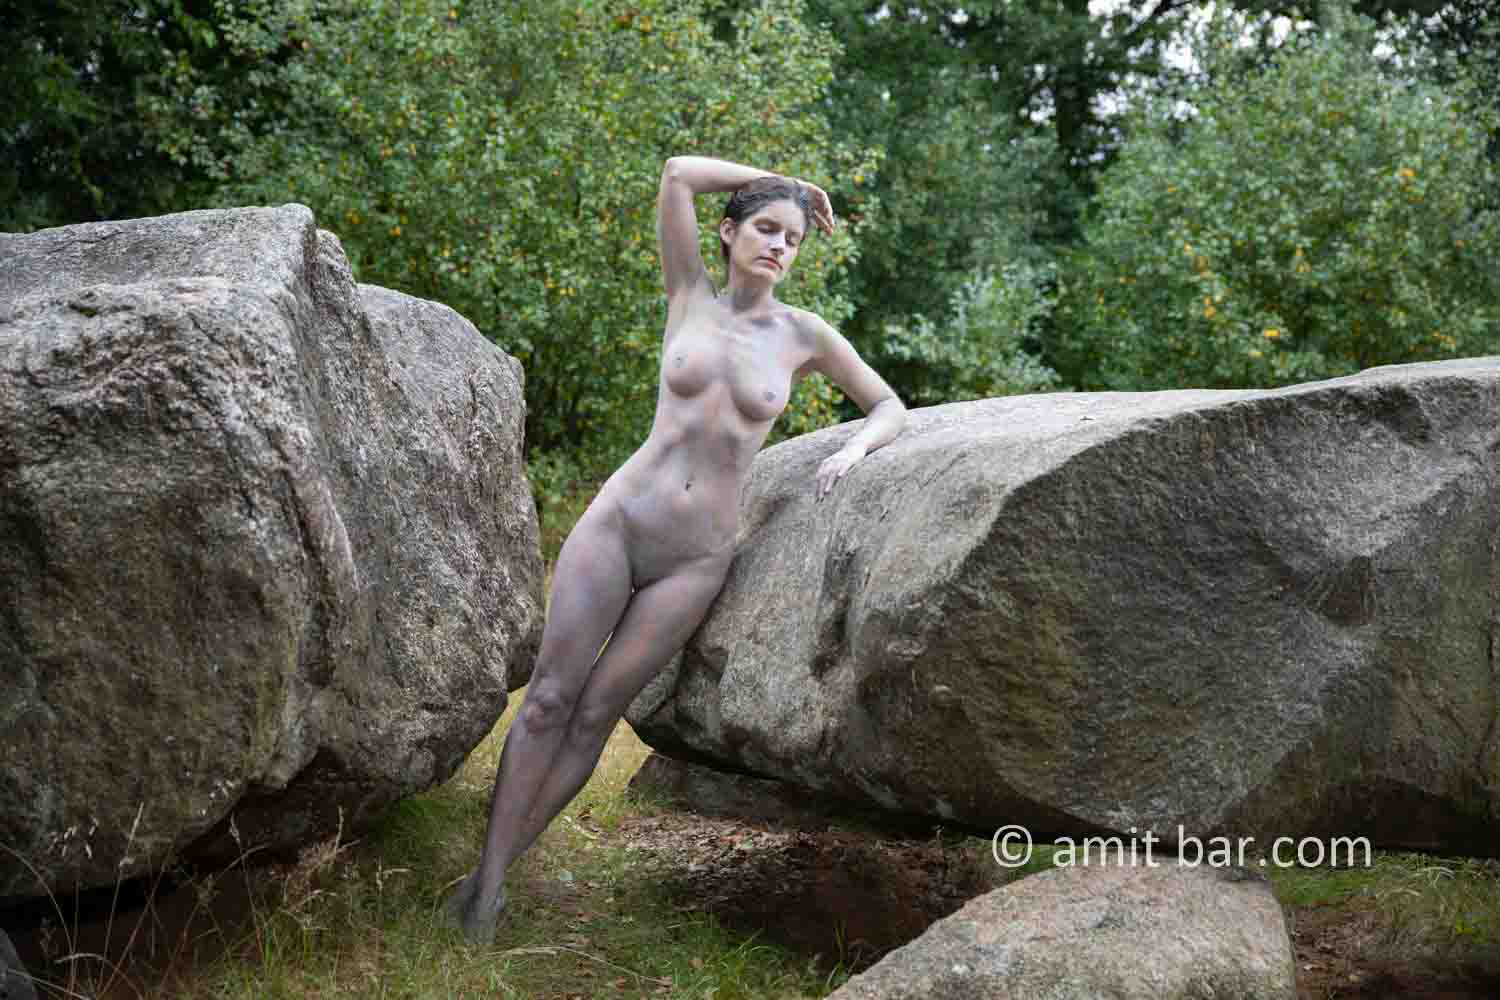 Dolmen woman body-painting II: body painted Elle is walking and laying around and on the huge stones of the dolmen at Drenthe, The Netherlands